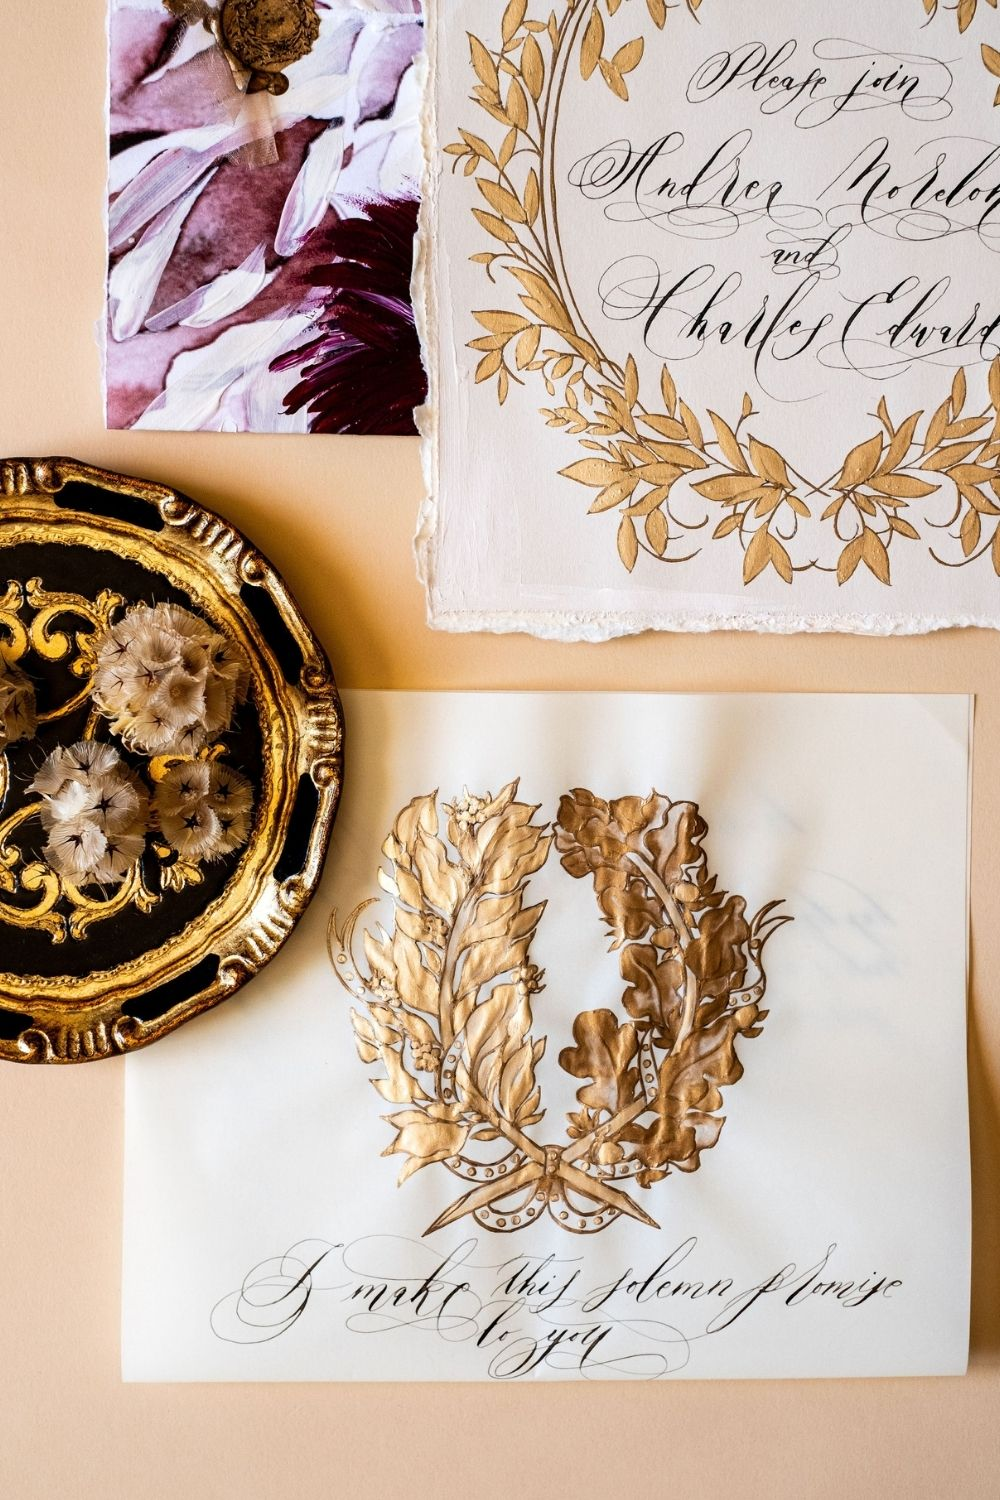 Beautiful, Italian style vintage crest design with gold hand painted details for a luxury wedding at Villa Balbiano